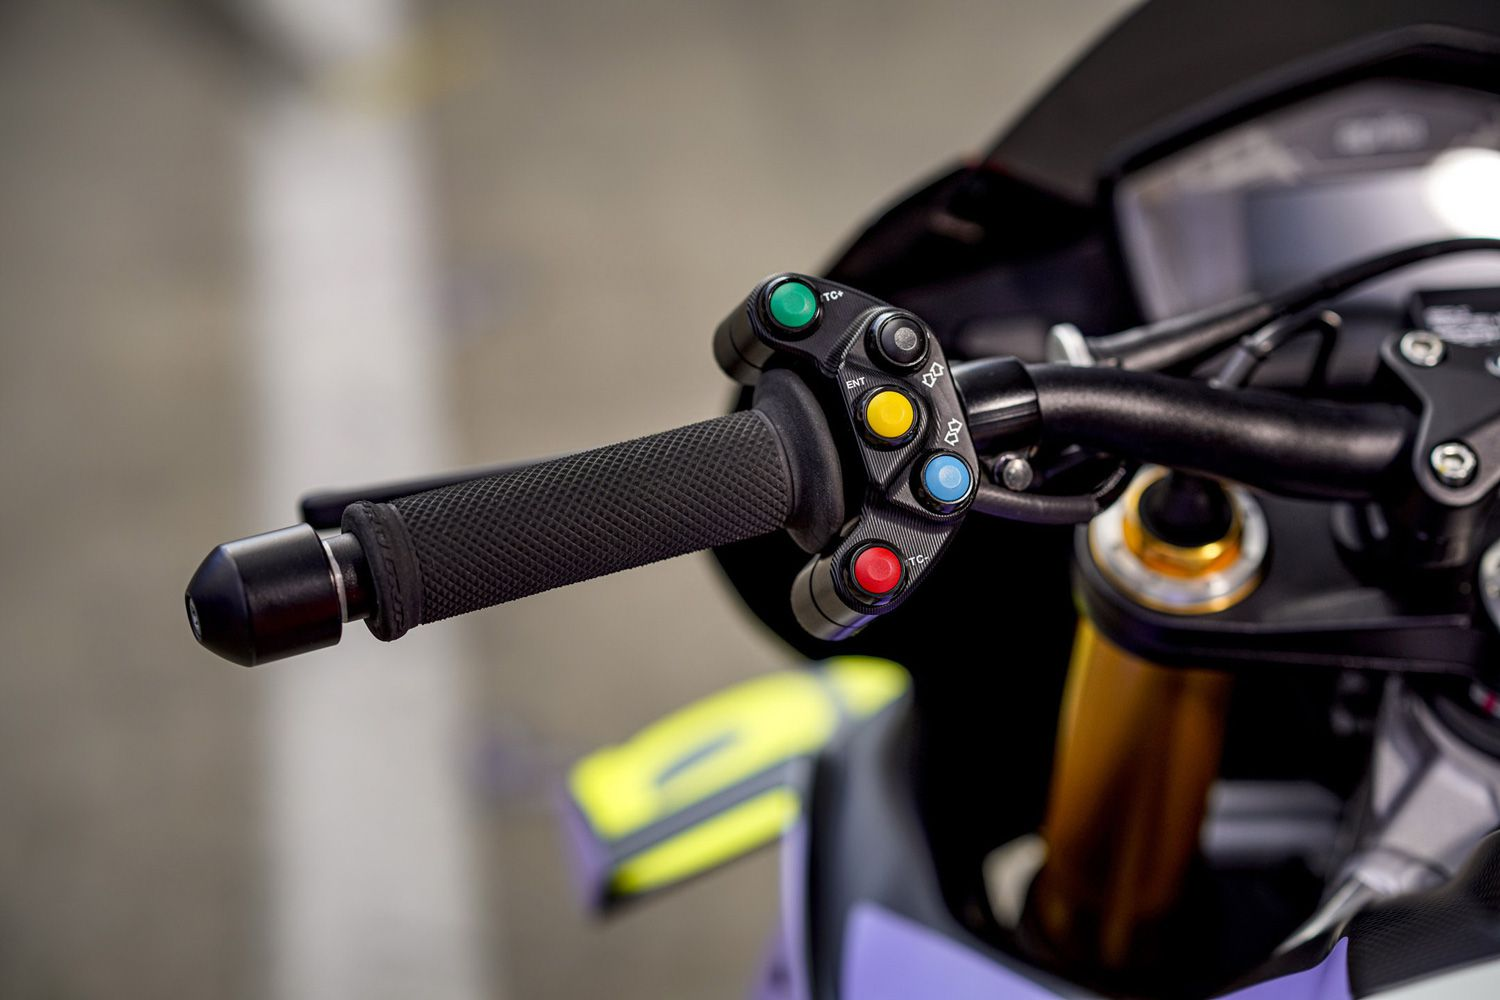 A cluster of selectable mode buttons make their way onto each side of the handlebar.